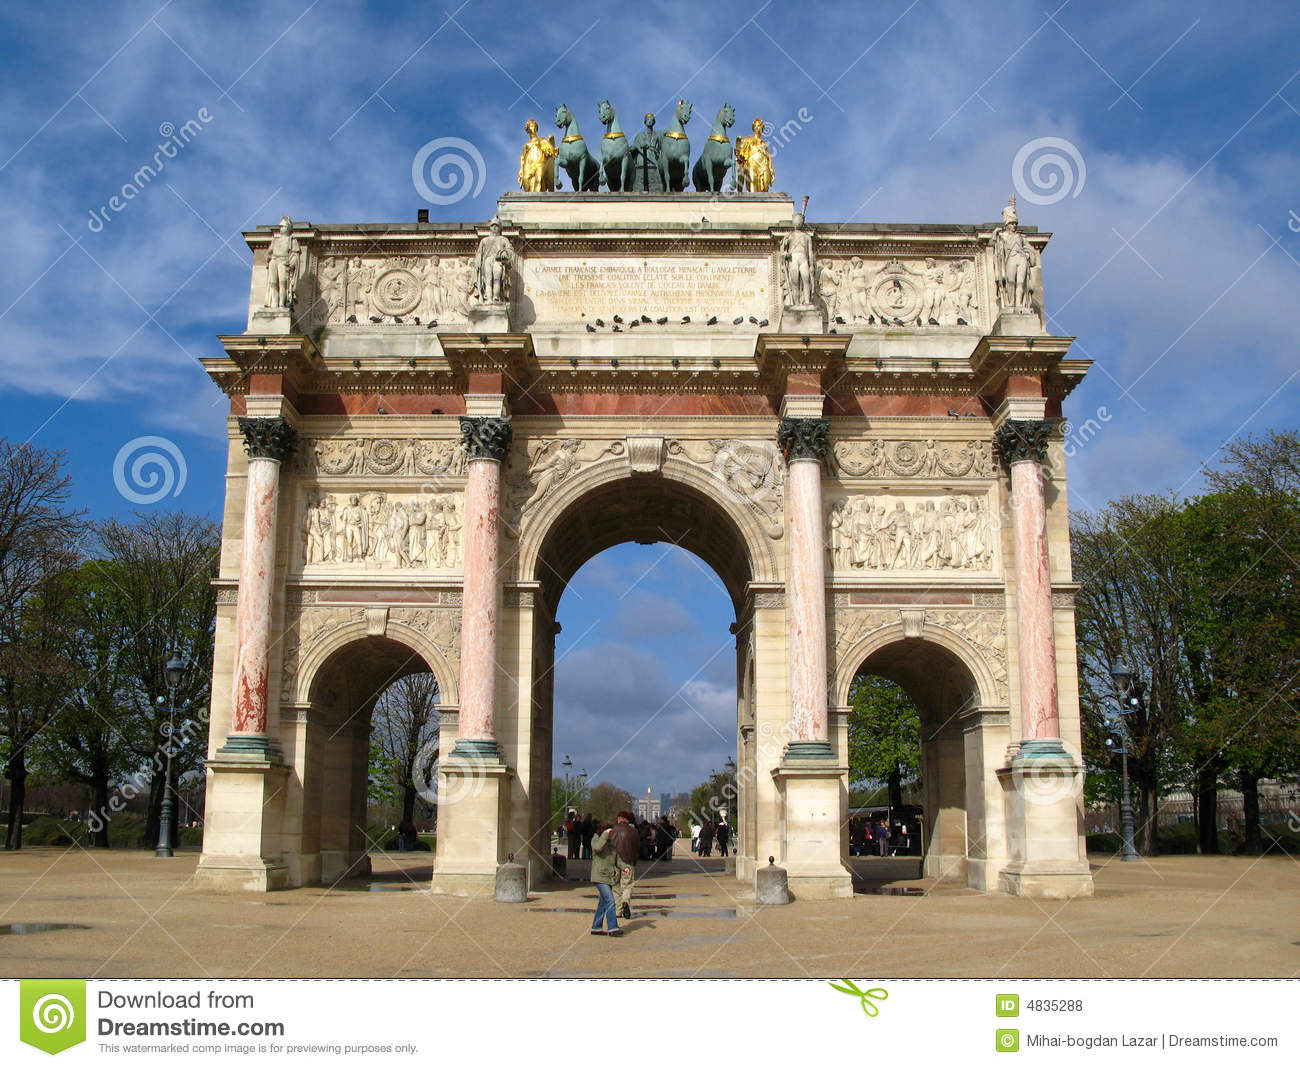 arc de triomphe du carrousel paris france stock photo image of triumphal carrousel 4835288. Black Bedroom Furniture Sets. Home Design Ideas